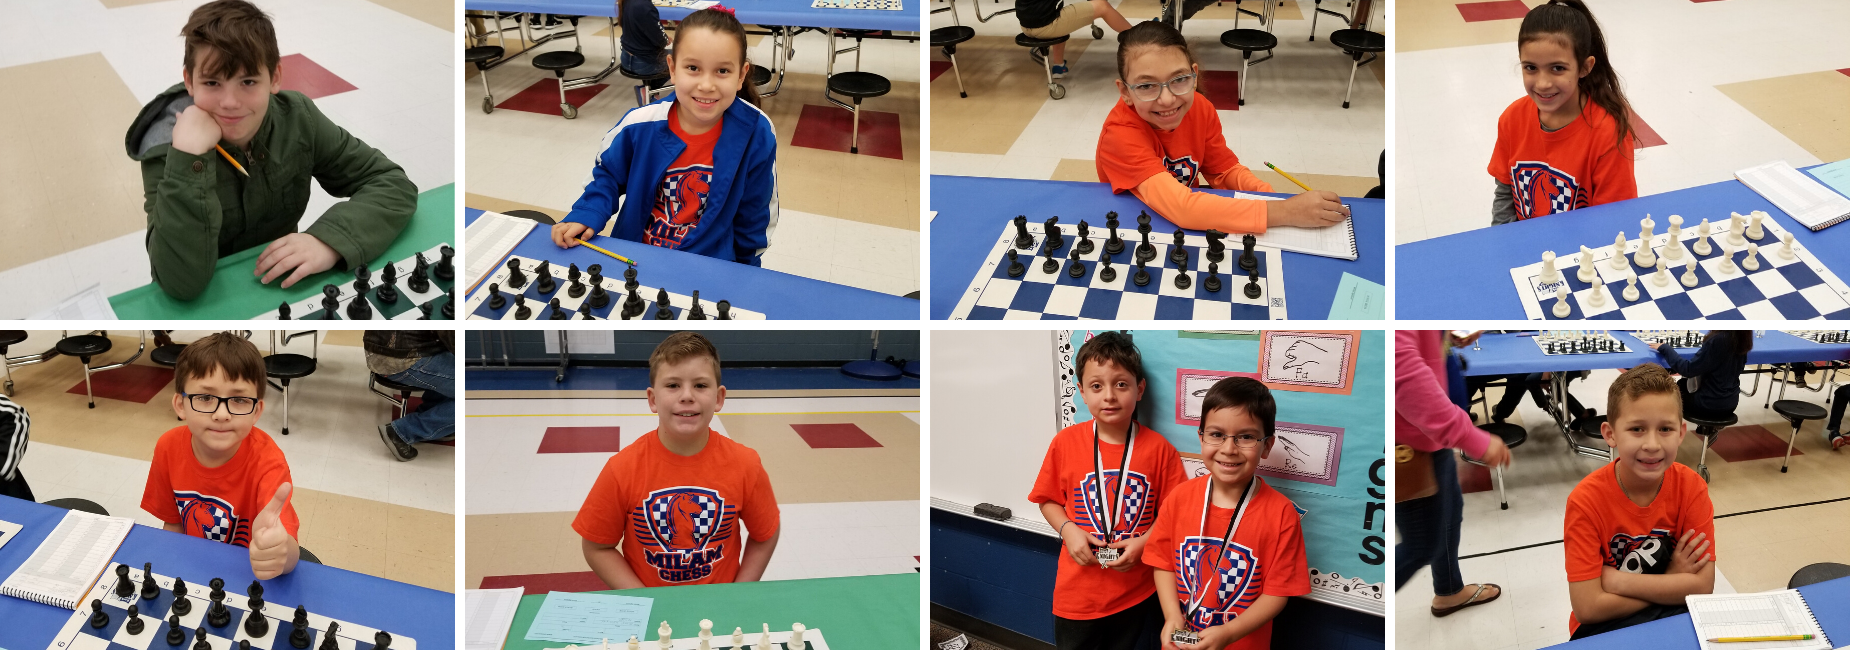 Milam Chess Team